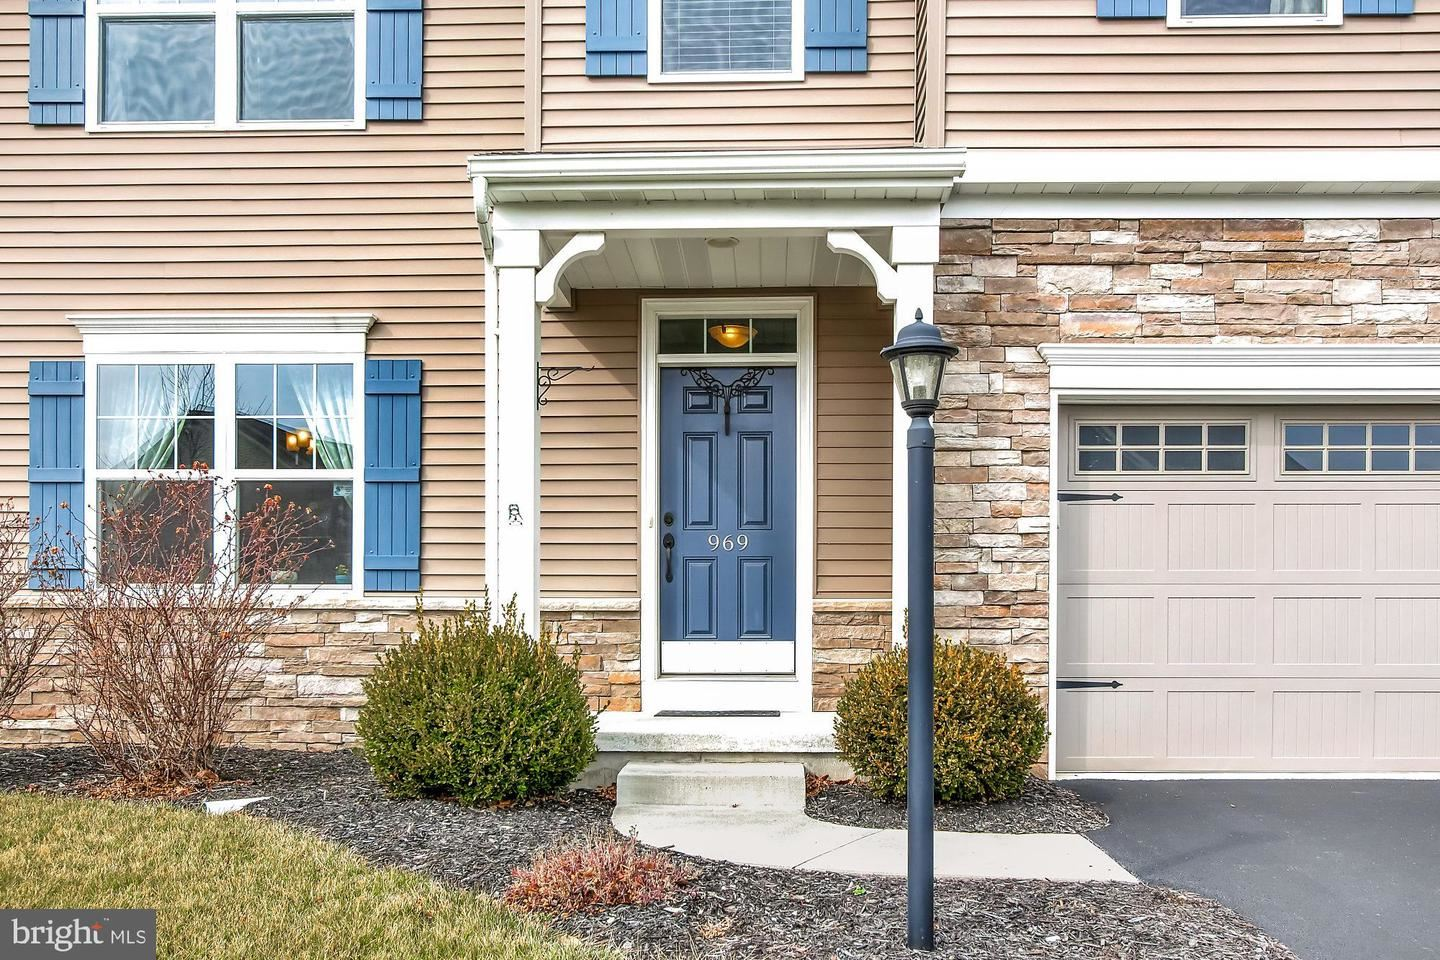 Photo of 969 CONNELL ST, MECHANICSBURG, PA 17055 (MLS # PACB121630)